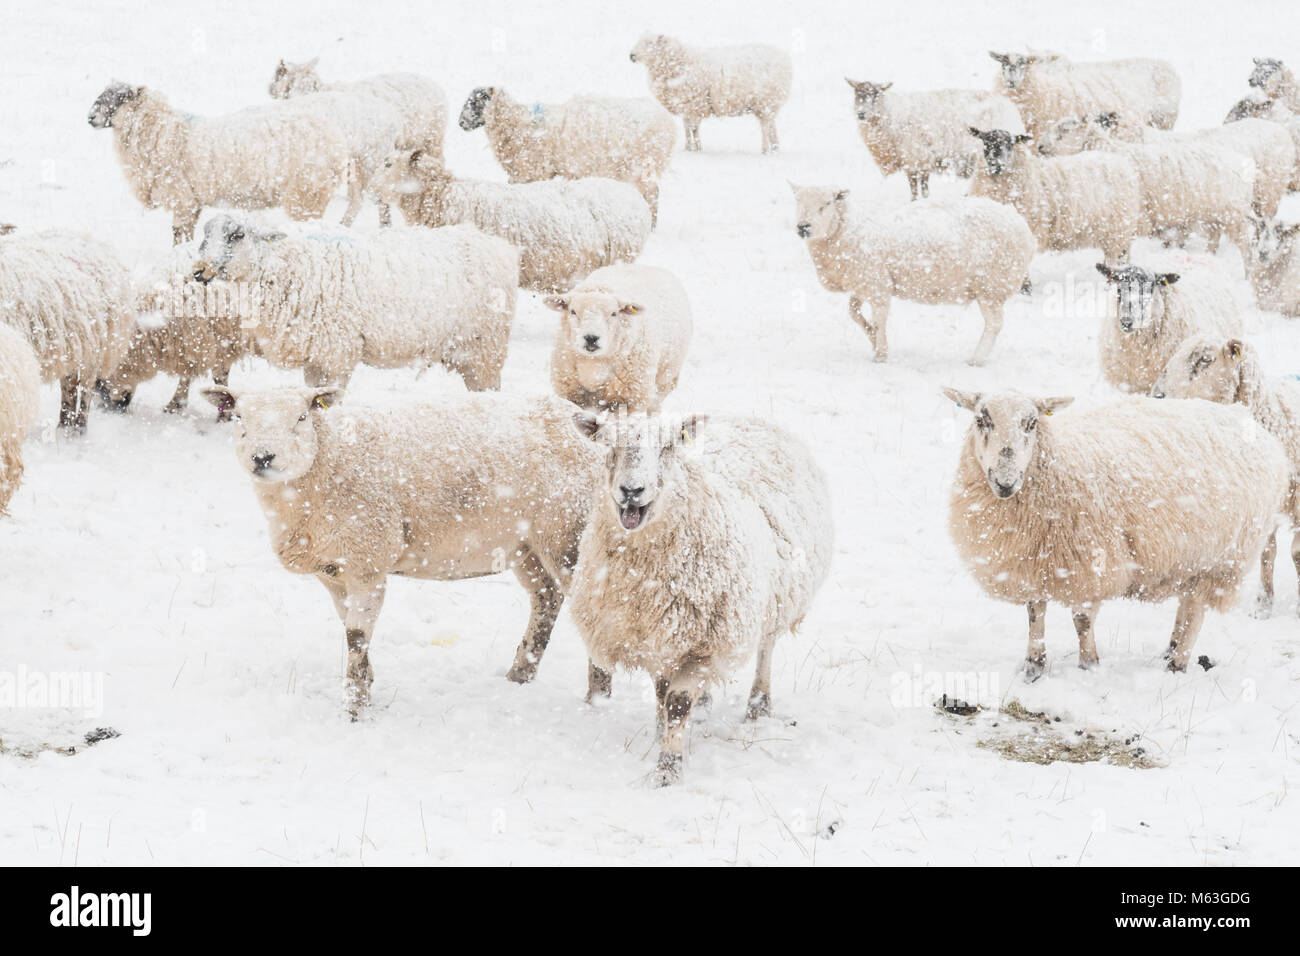 Balfron, Stirlingshire, Scotland, UK. 28th Feb, 2018. UK weather - sheep hoping for food in heavy snow, Balfron, - Stock Image